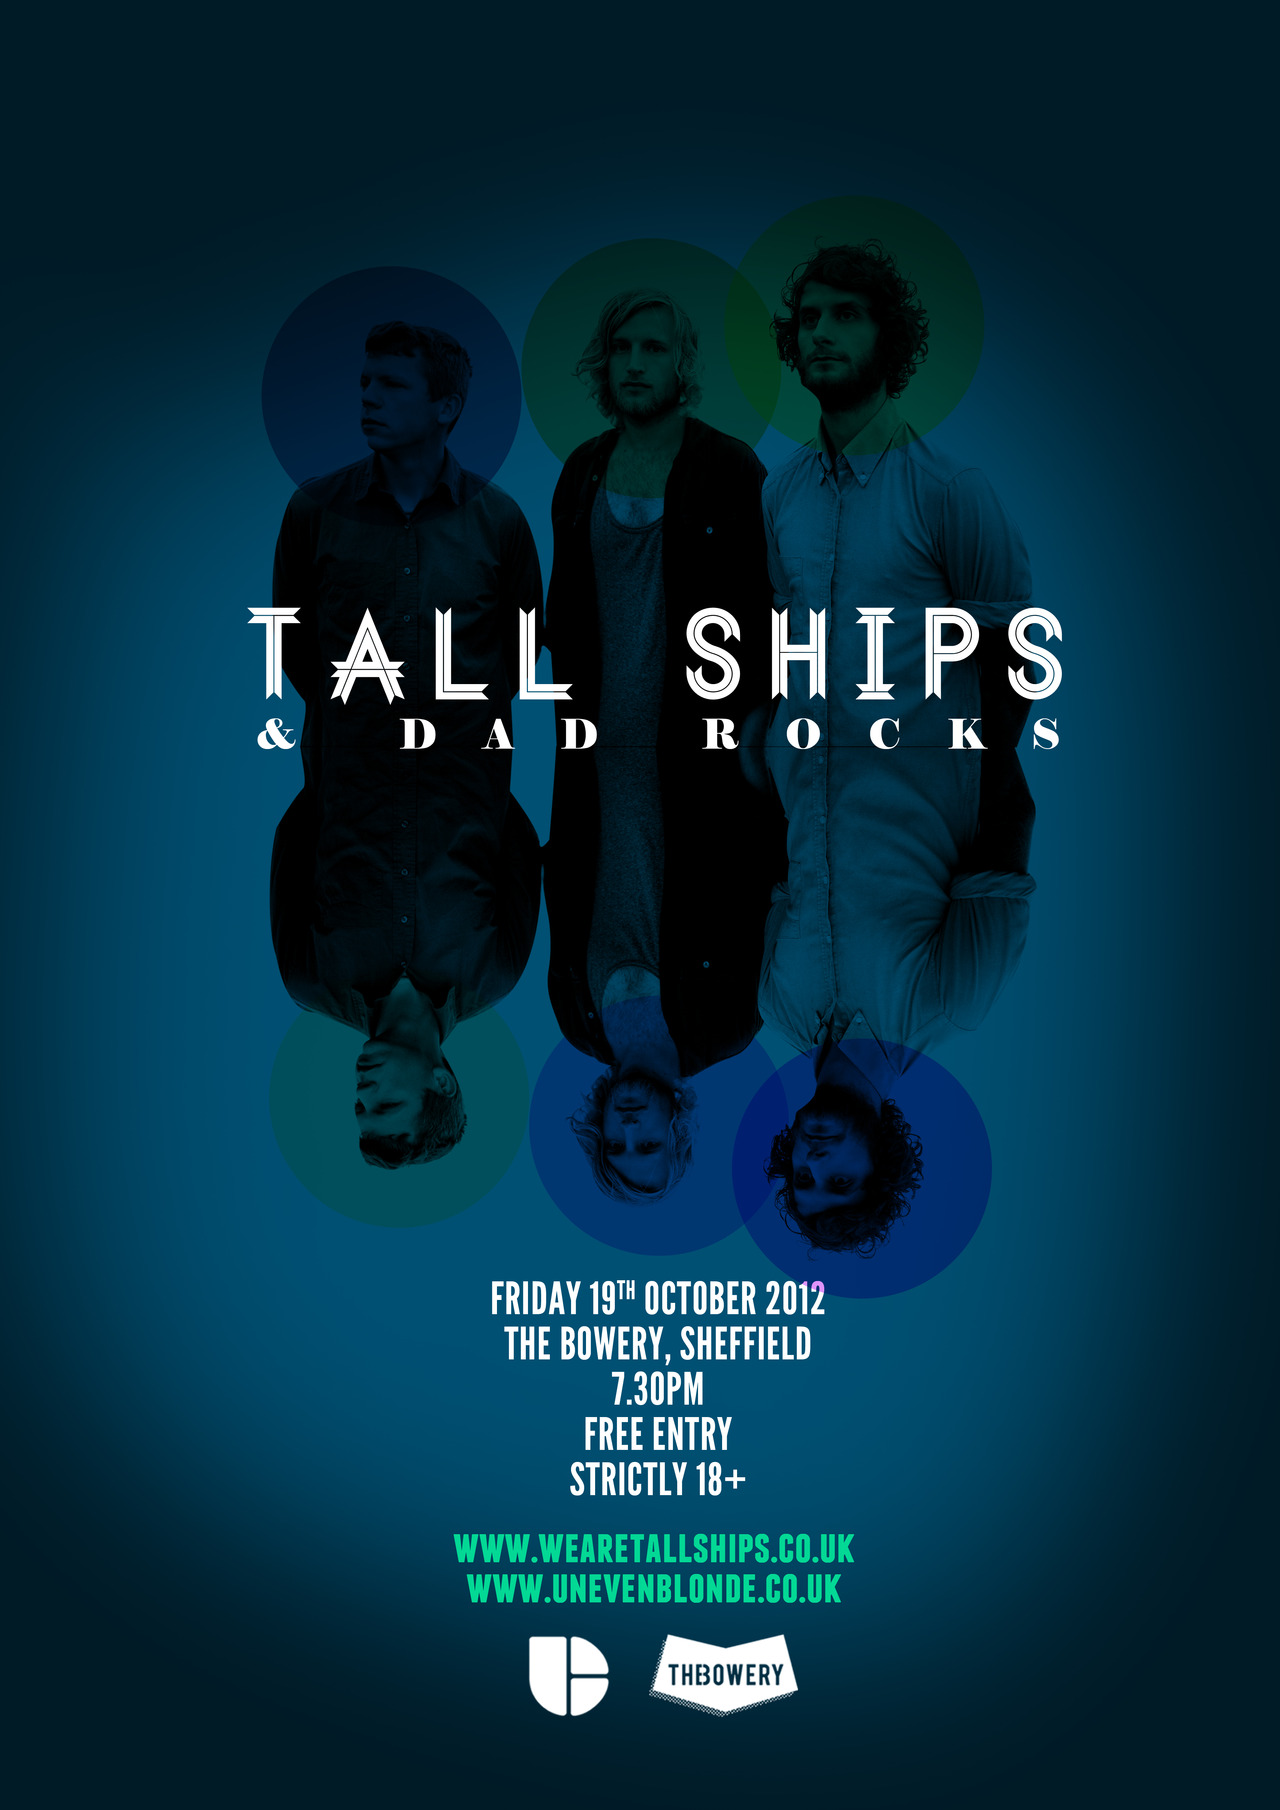 Tall Ships + Dad Rocks (in association with Uneven Blonde) The Bowery, Division Street, Sheffield Friday 19th October 2012 7:30pm Free Entry 18+ More details can be found here. facebook.com/wearetallships facebook.com/semidetachedevents